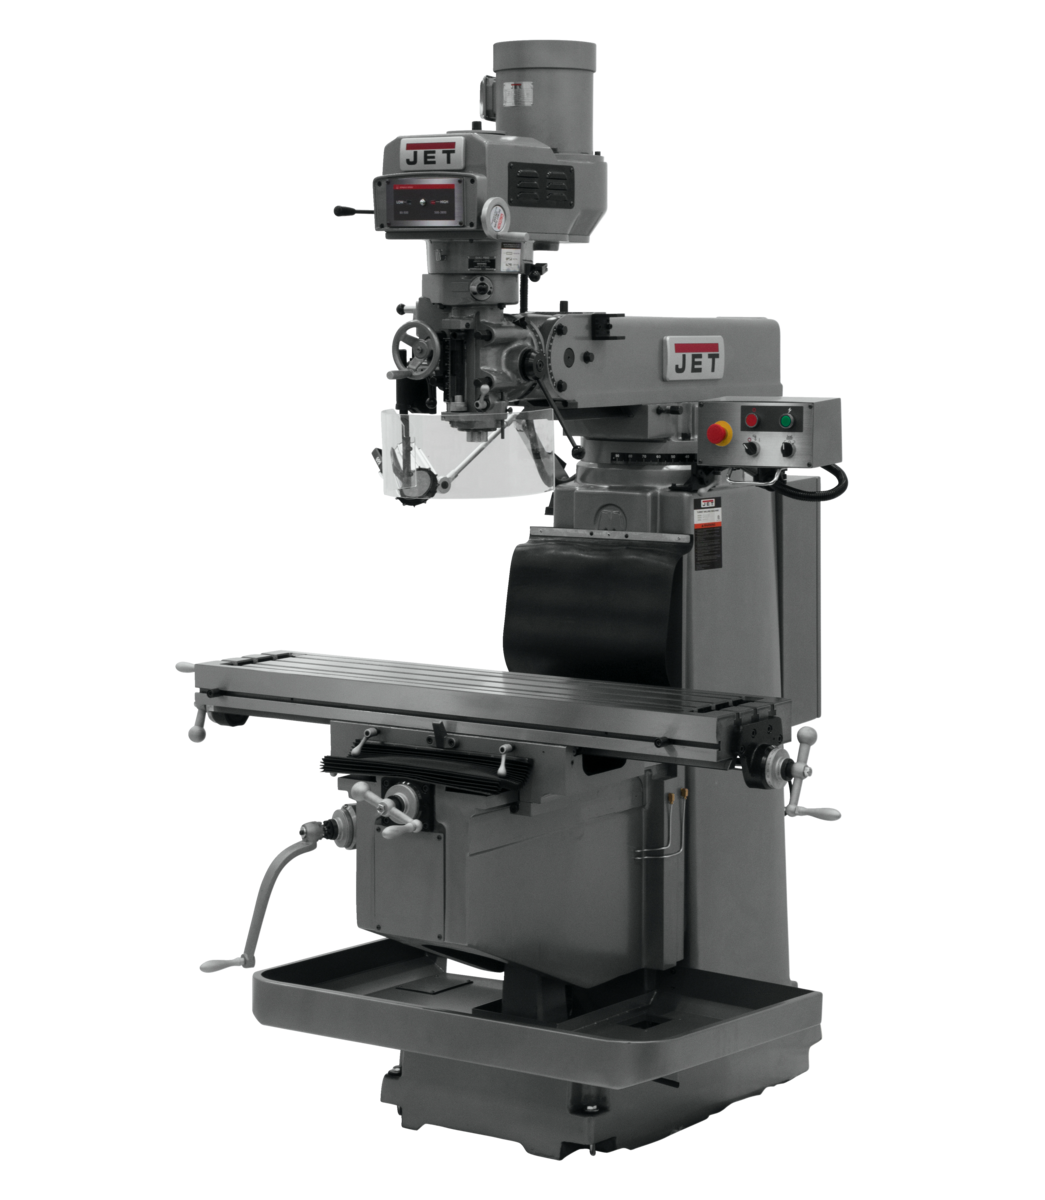 JTM-1254RVS with 2-Axis ACU-RITE G-2 MILLPOWER CNC